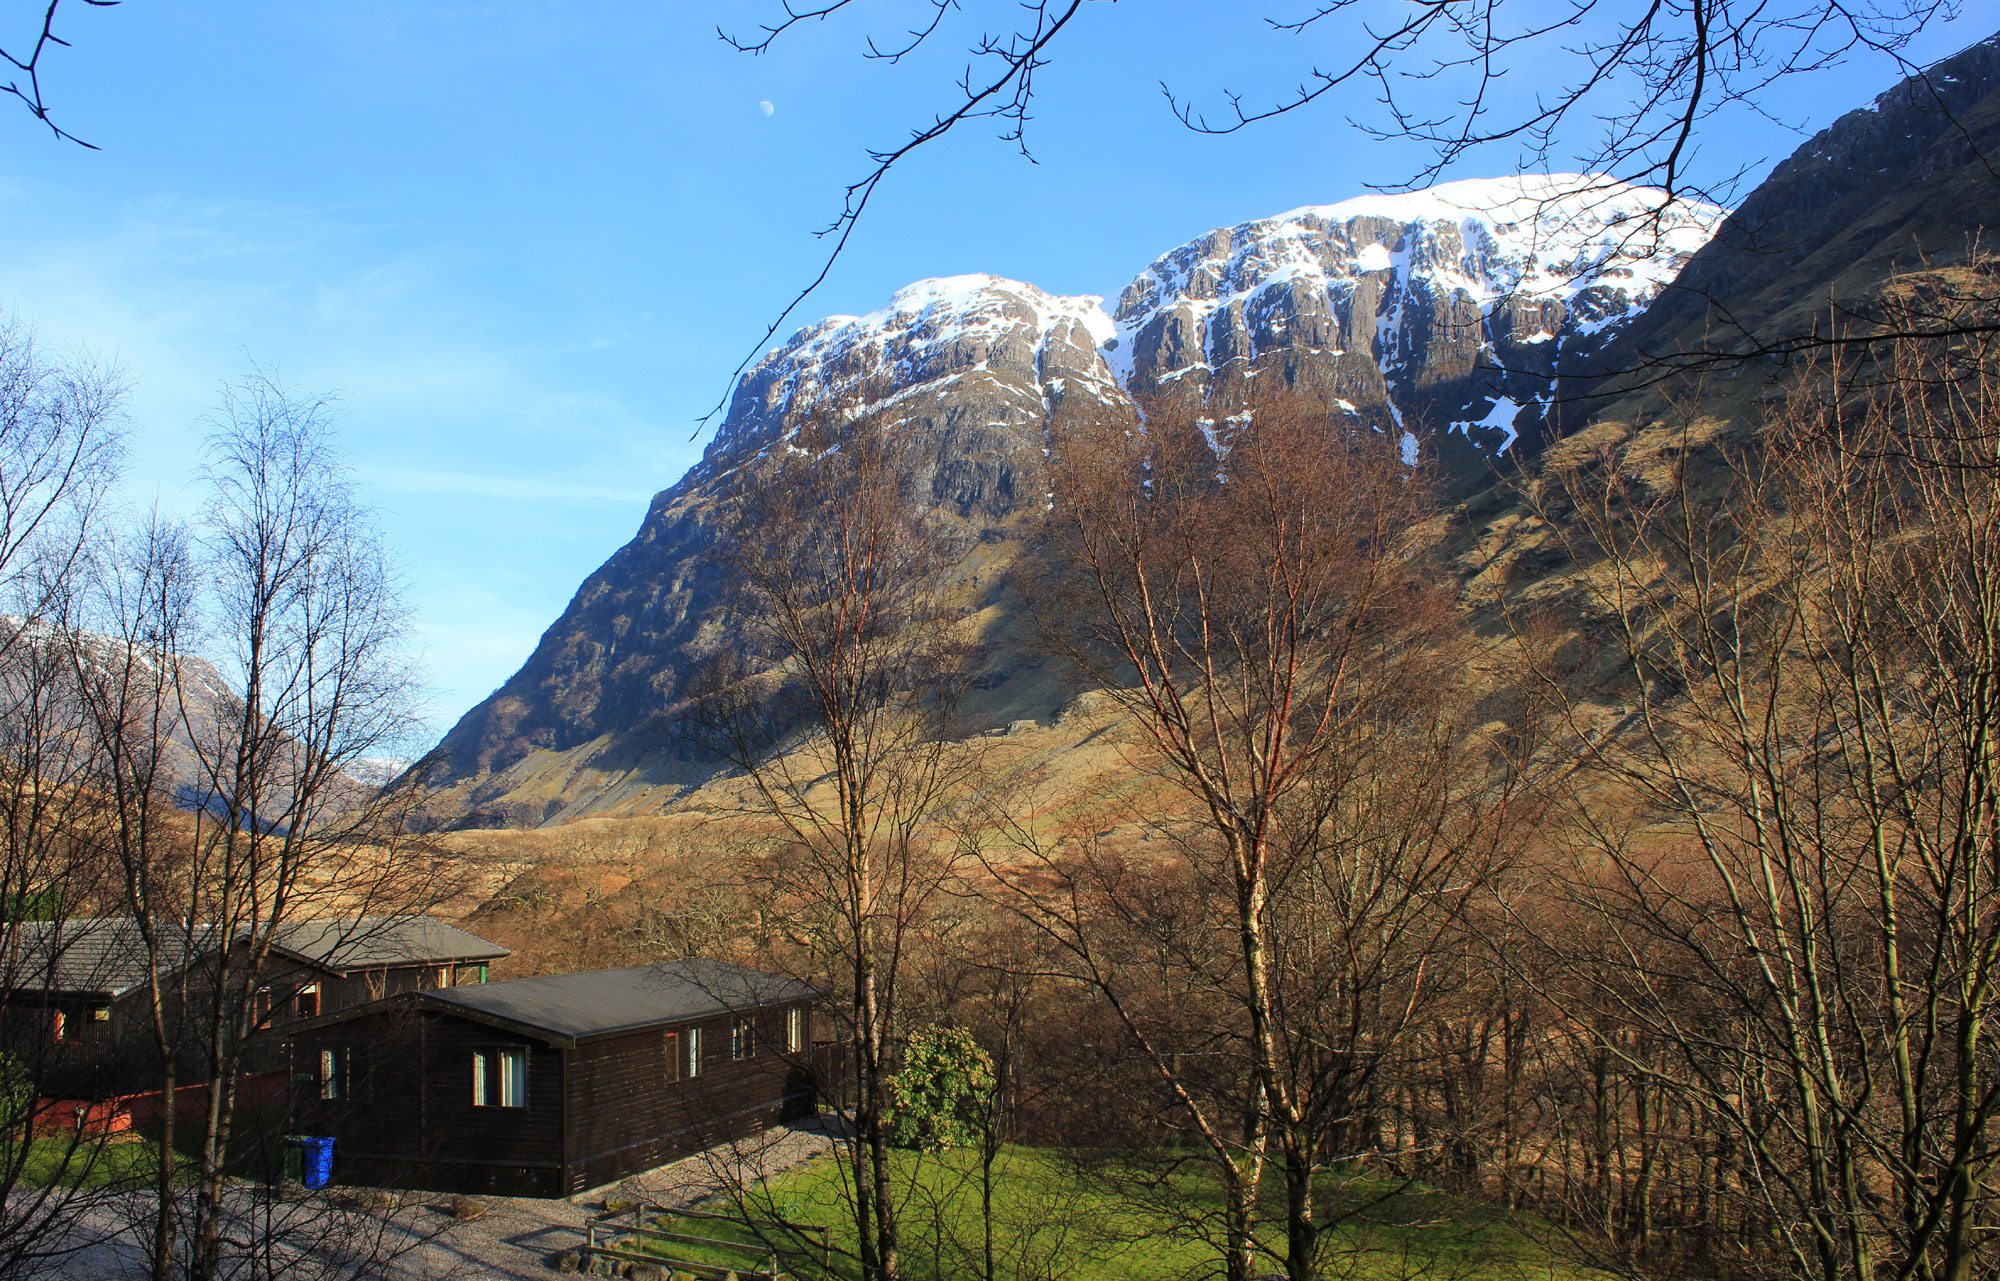 rowan tree lodge and the west face